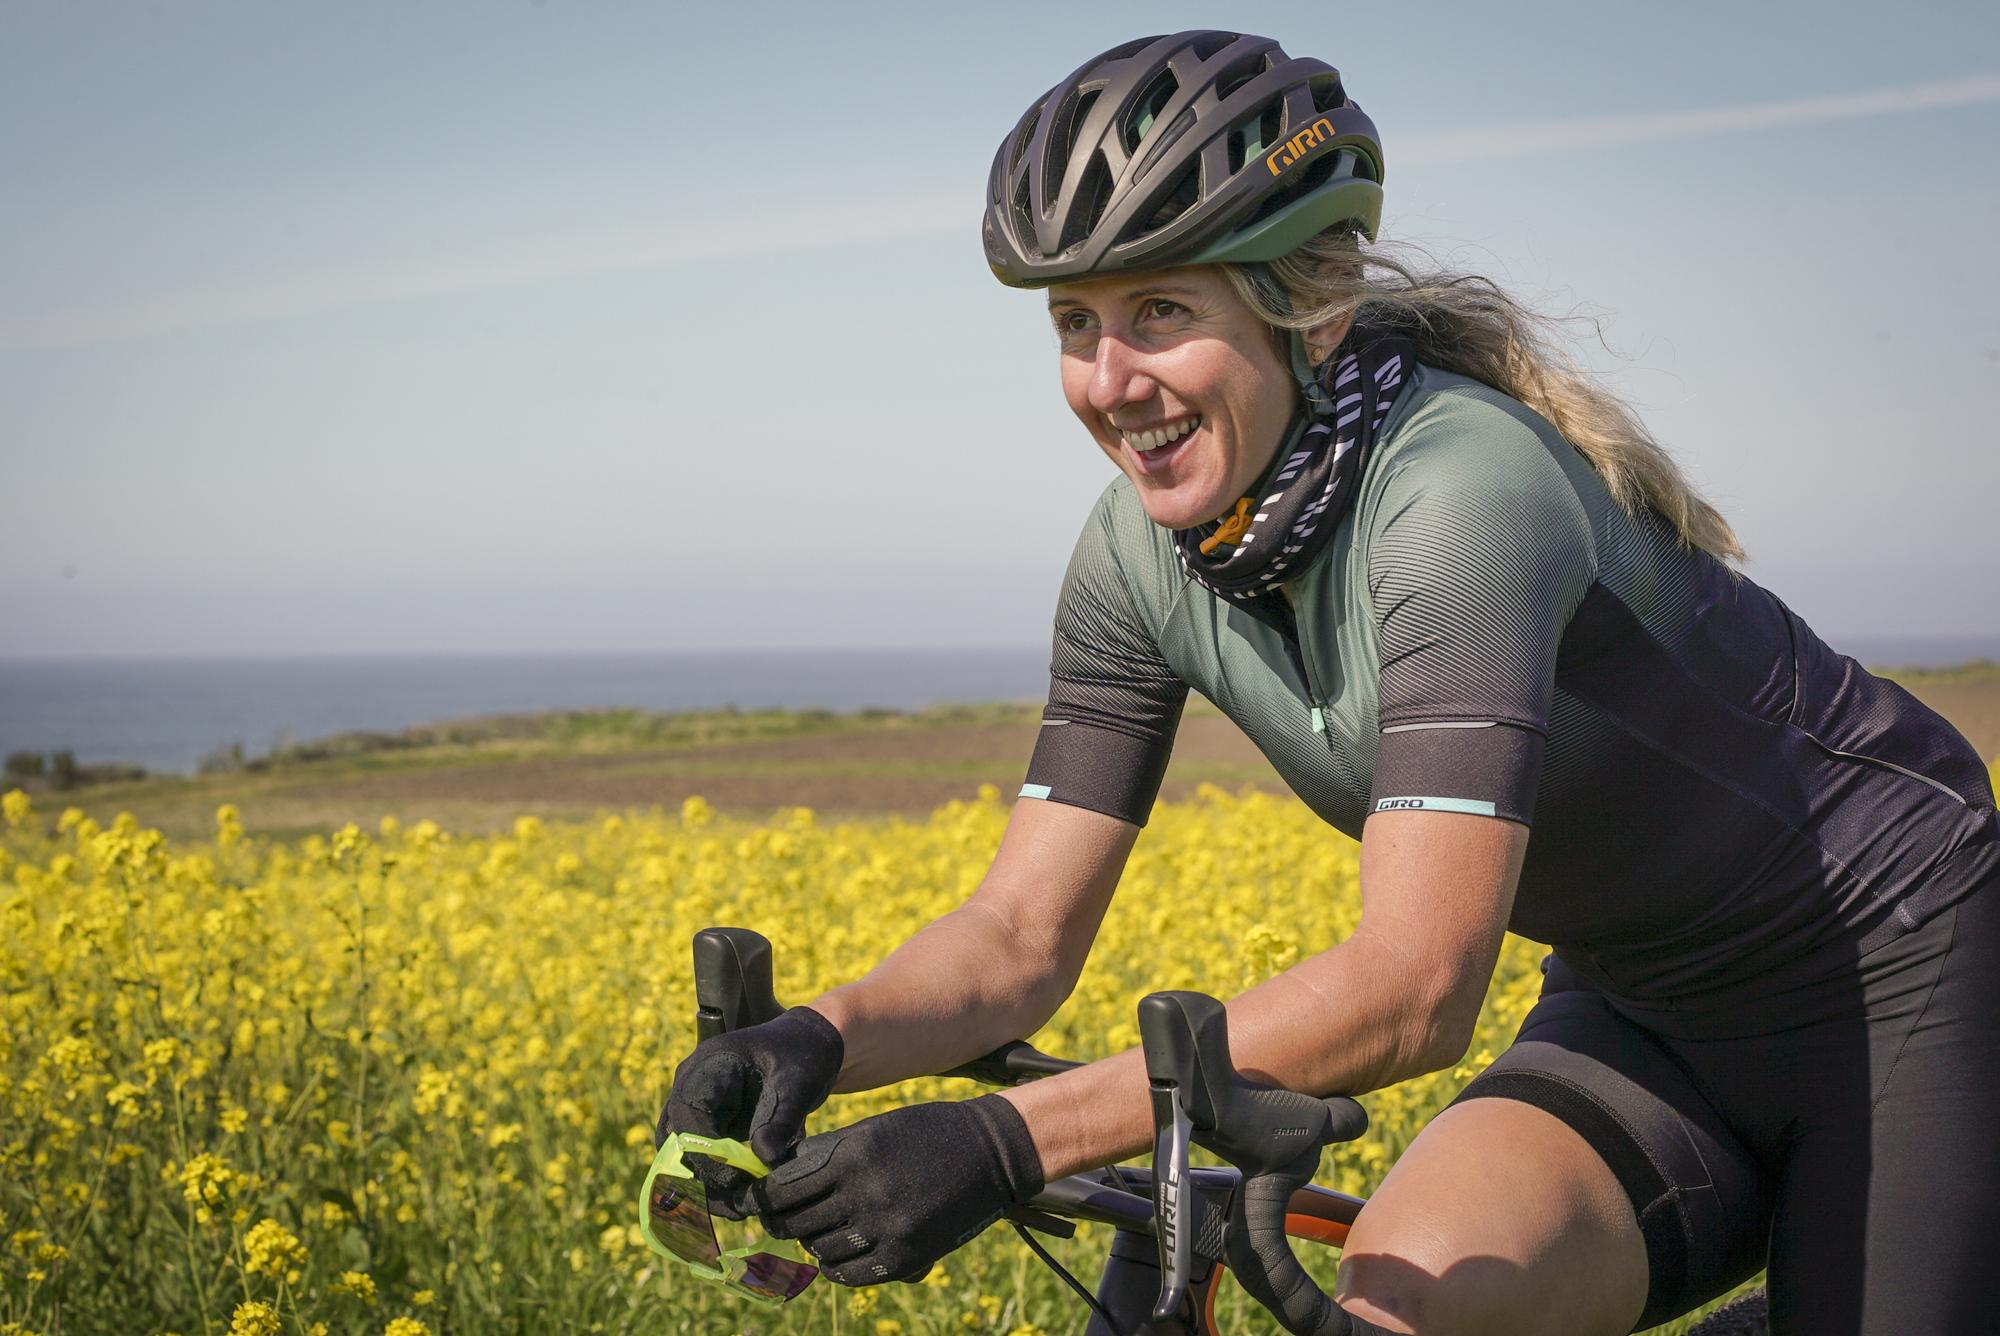 Kathy made the switch from 2-mile downhill races to 200-mile gravel races.